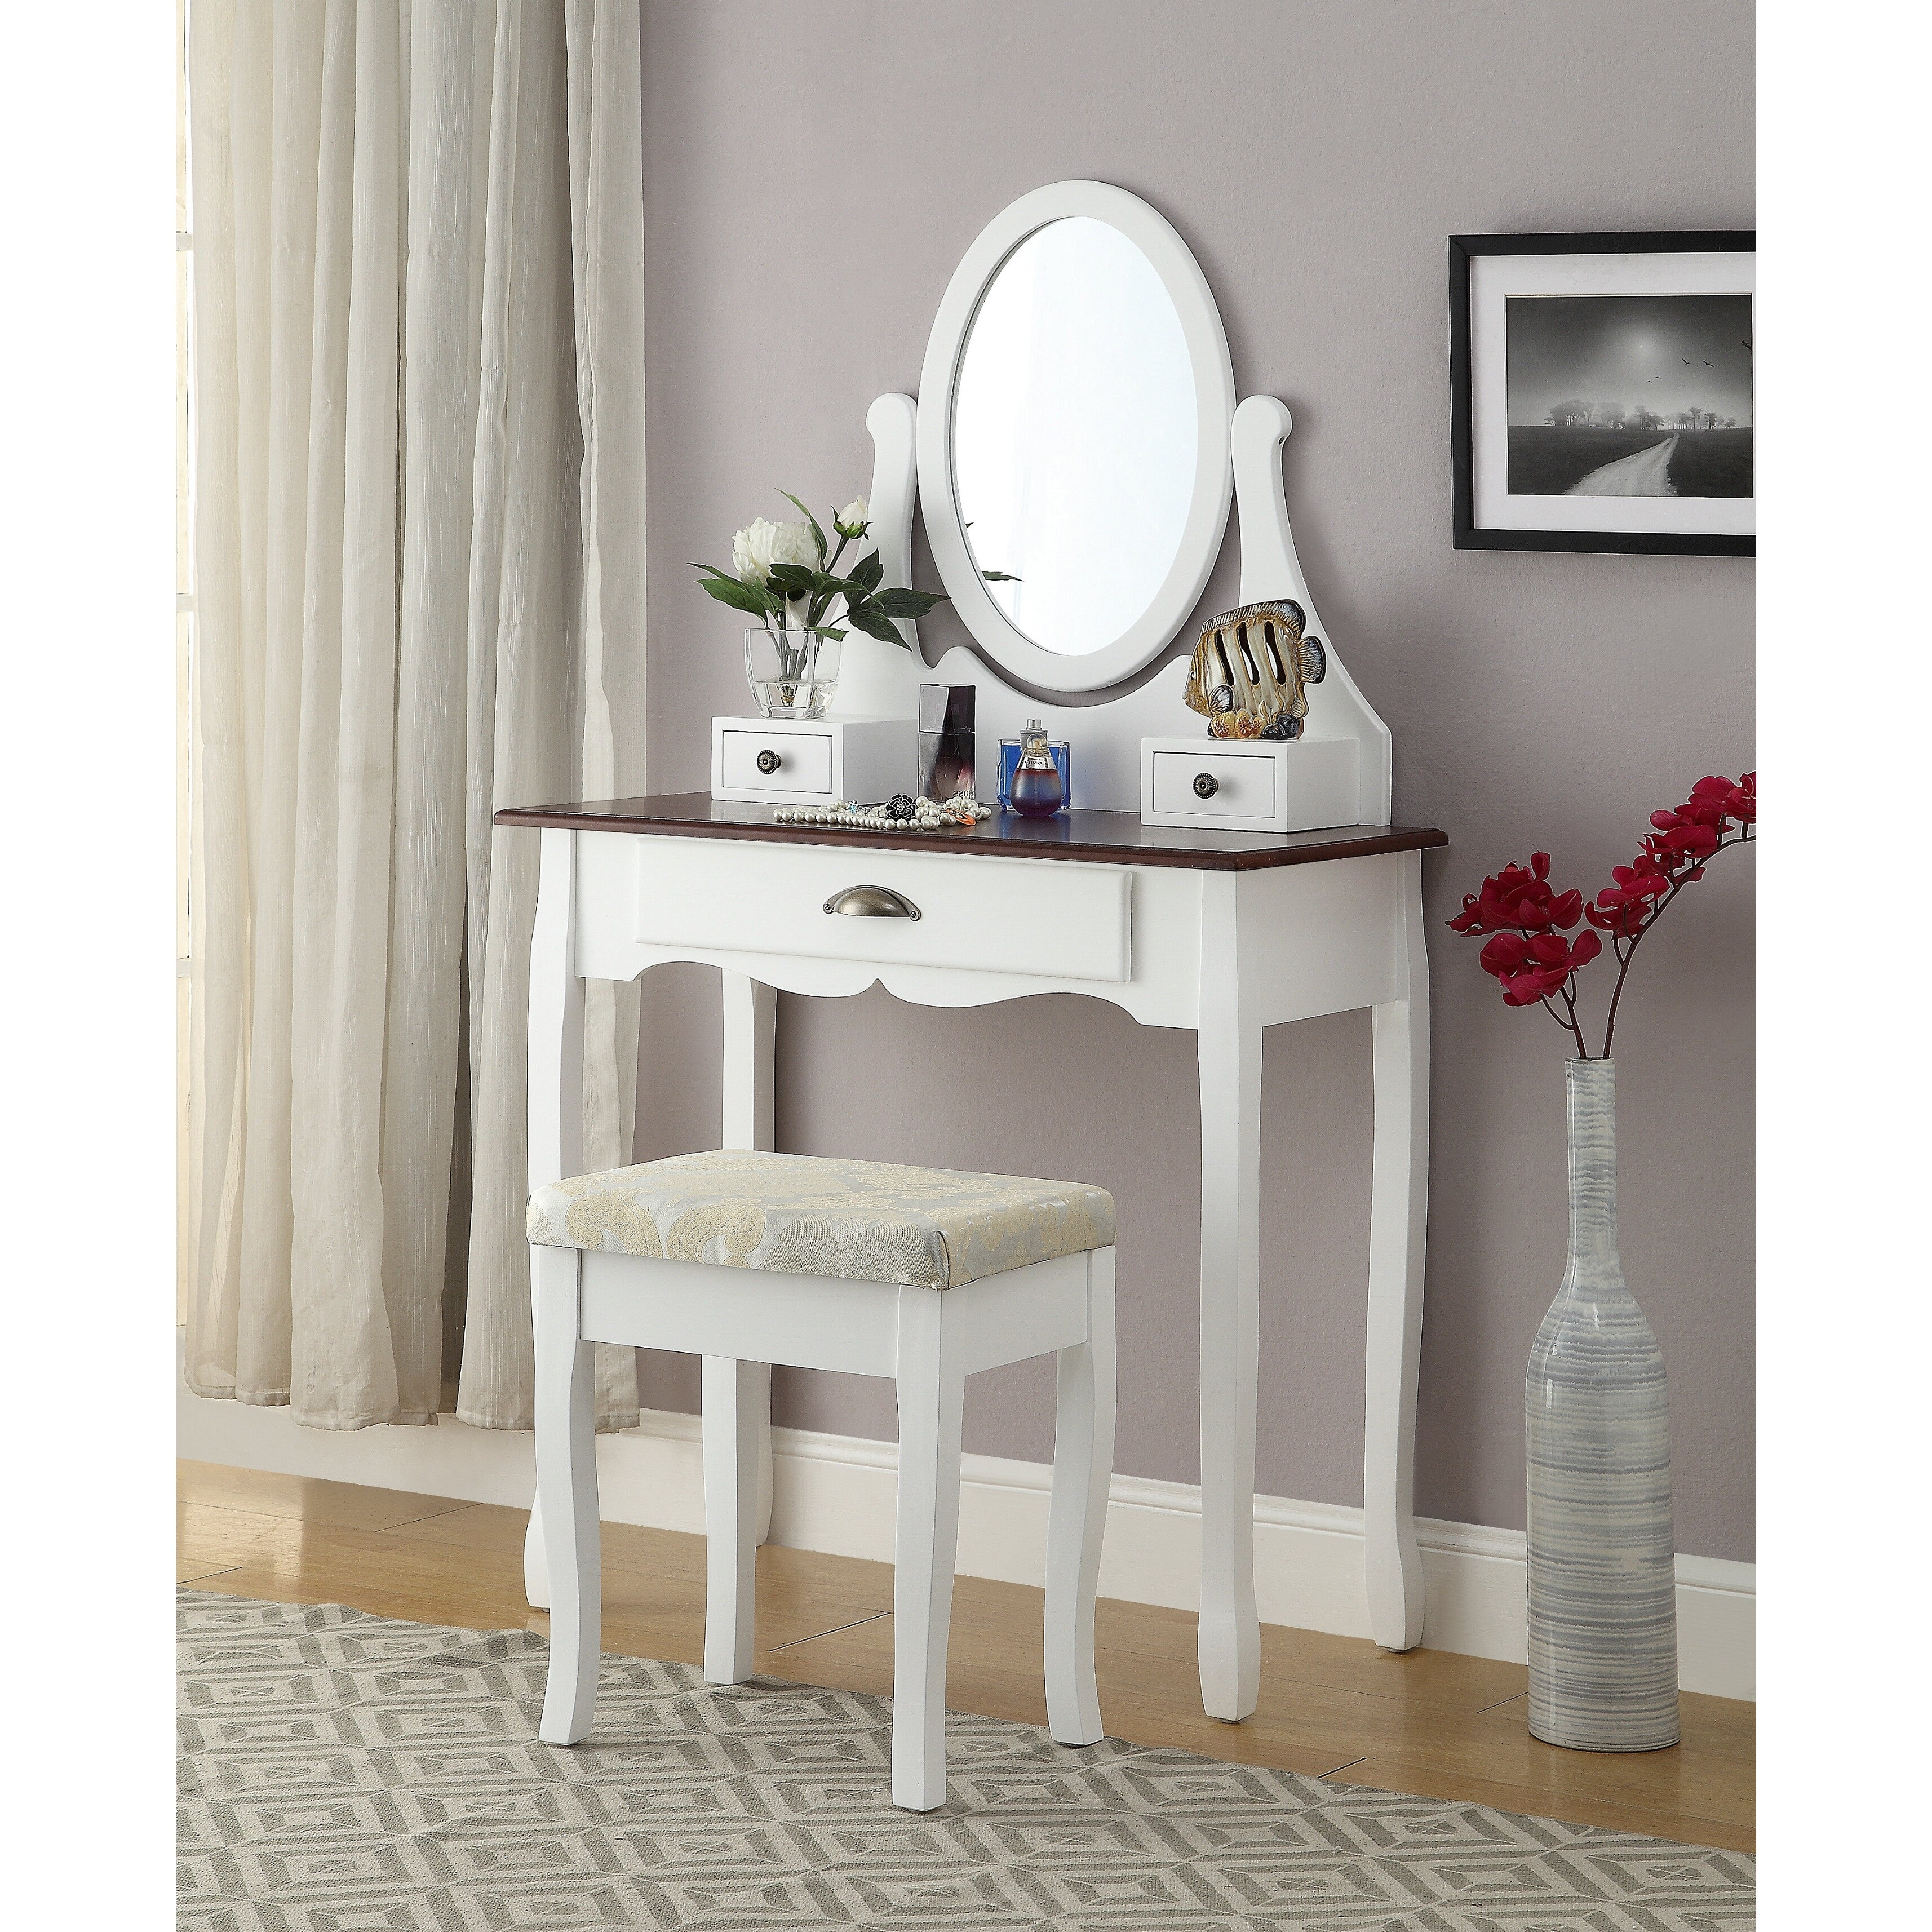 Wooden Make Up Table Interhy Wooden Vanity Make Up Table And Stool Set